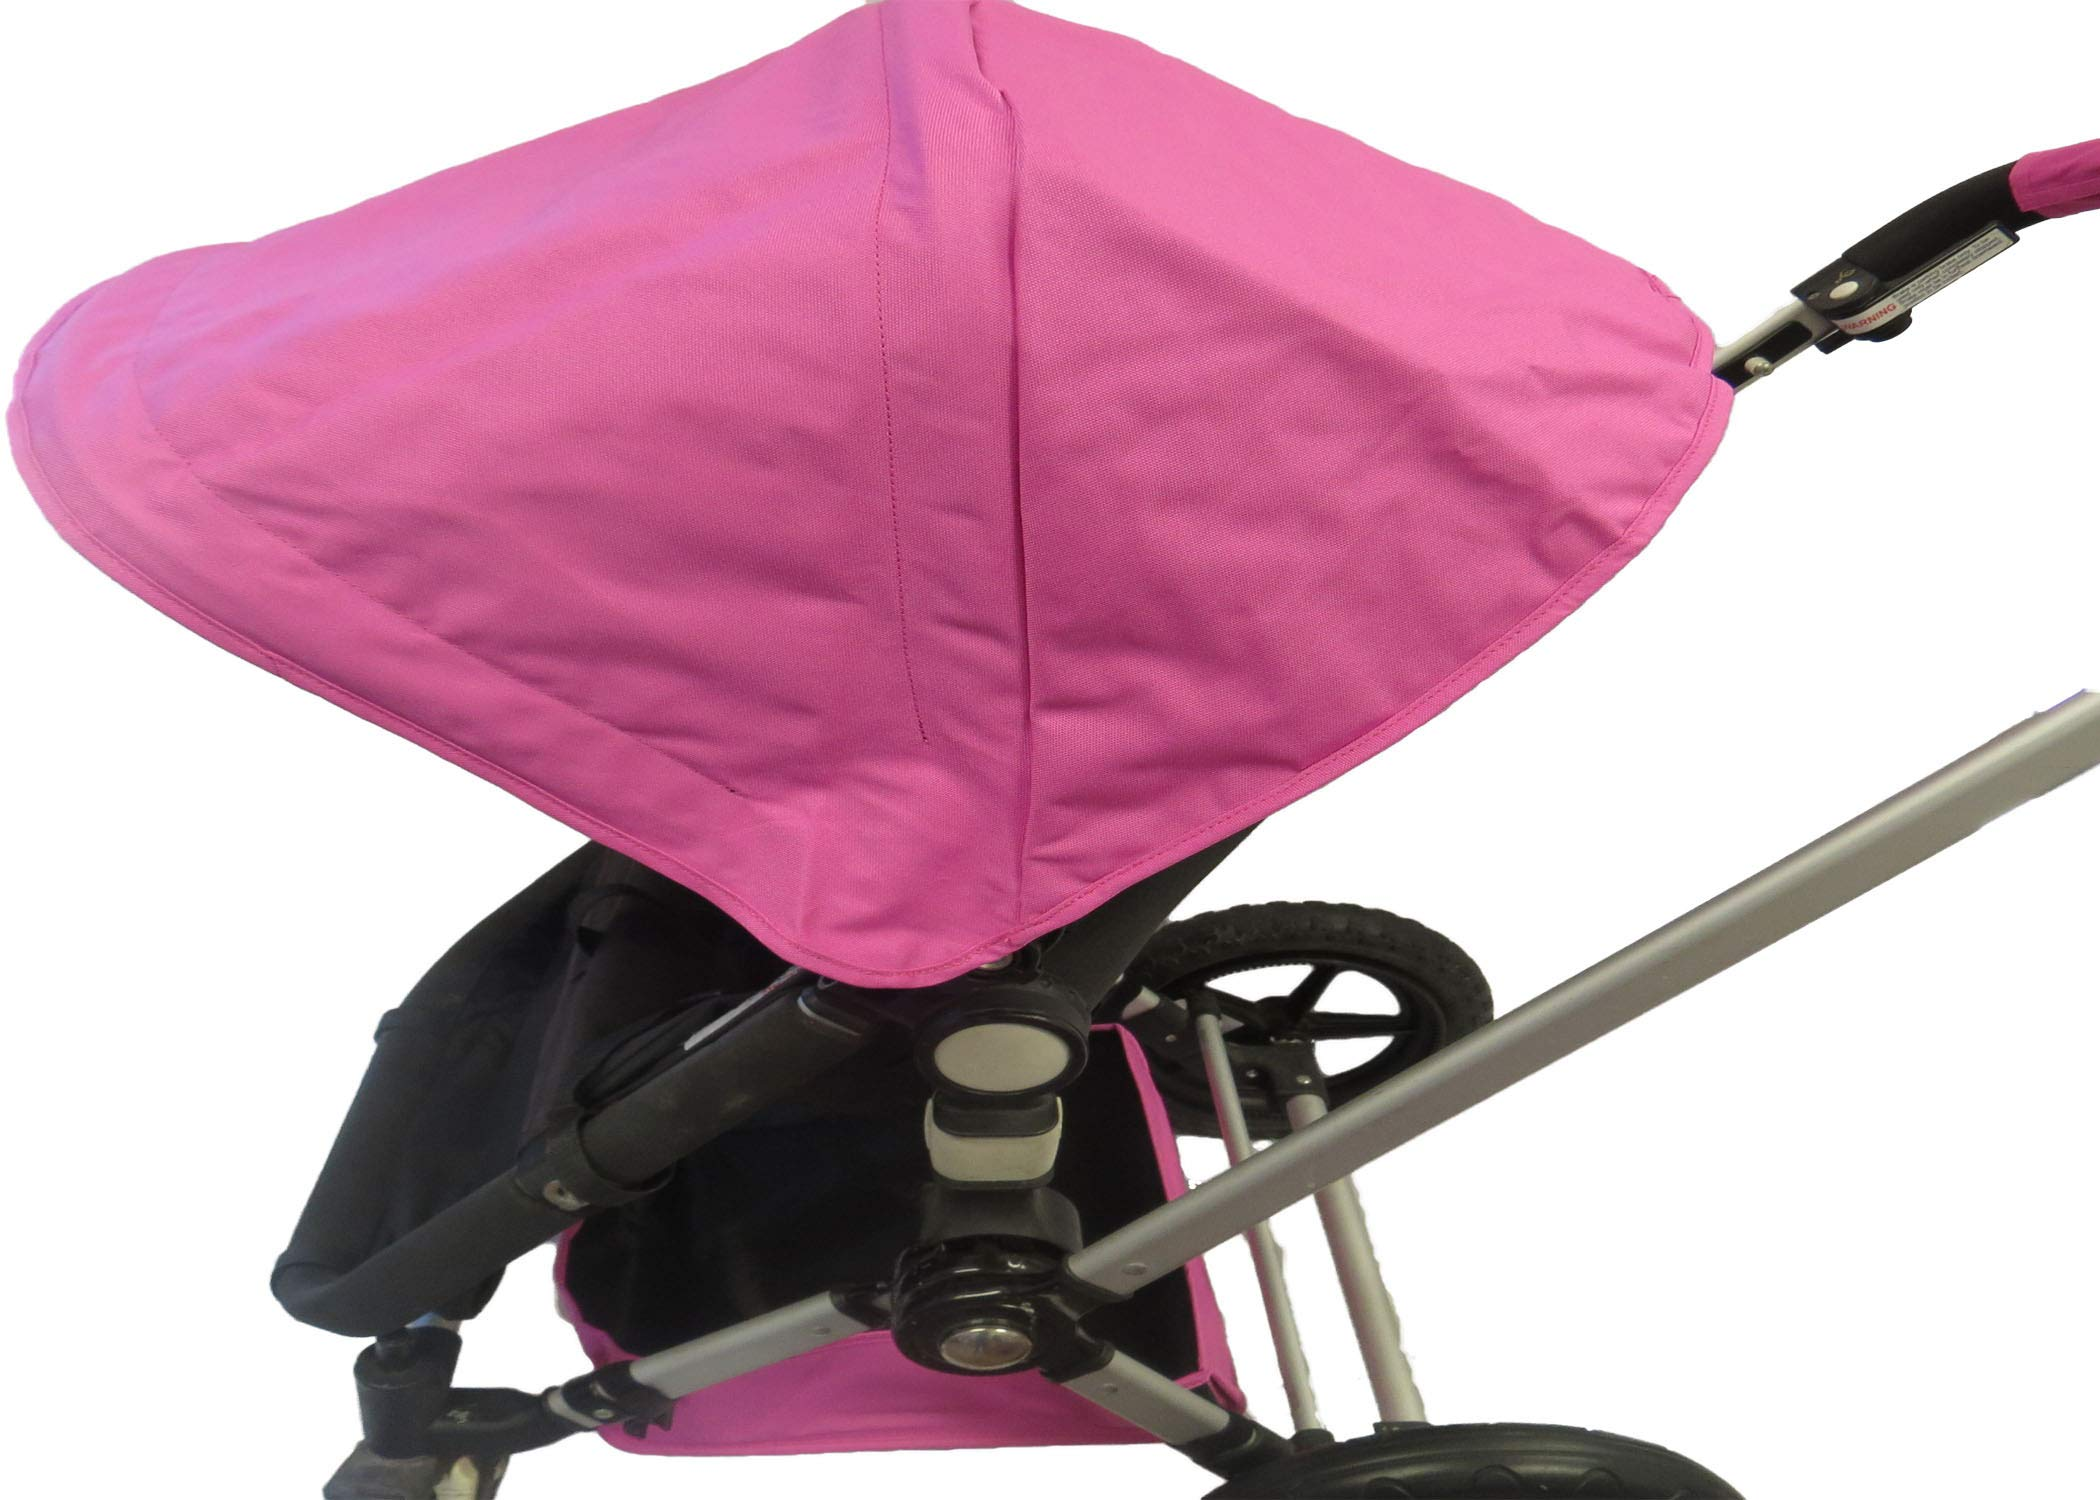 Pink Sun Shade Canopy Hood Cover Umbrella with Wires for Bugaboo Cameleon 1, 2, 3, Frog Baby Child Strollers